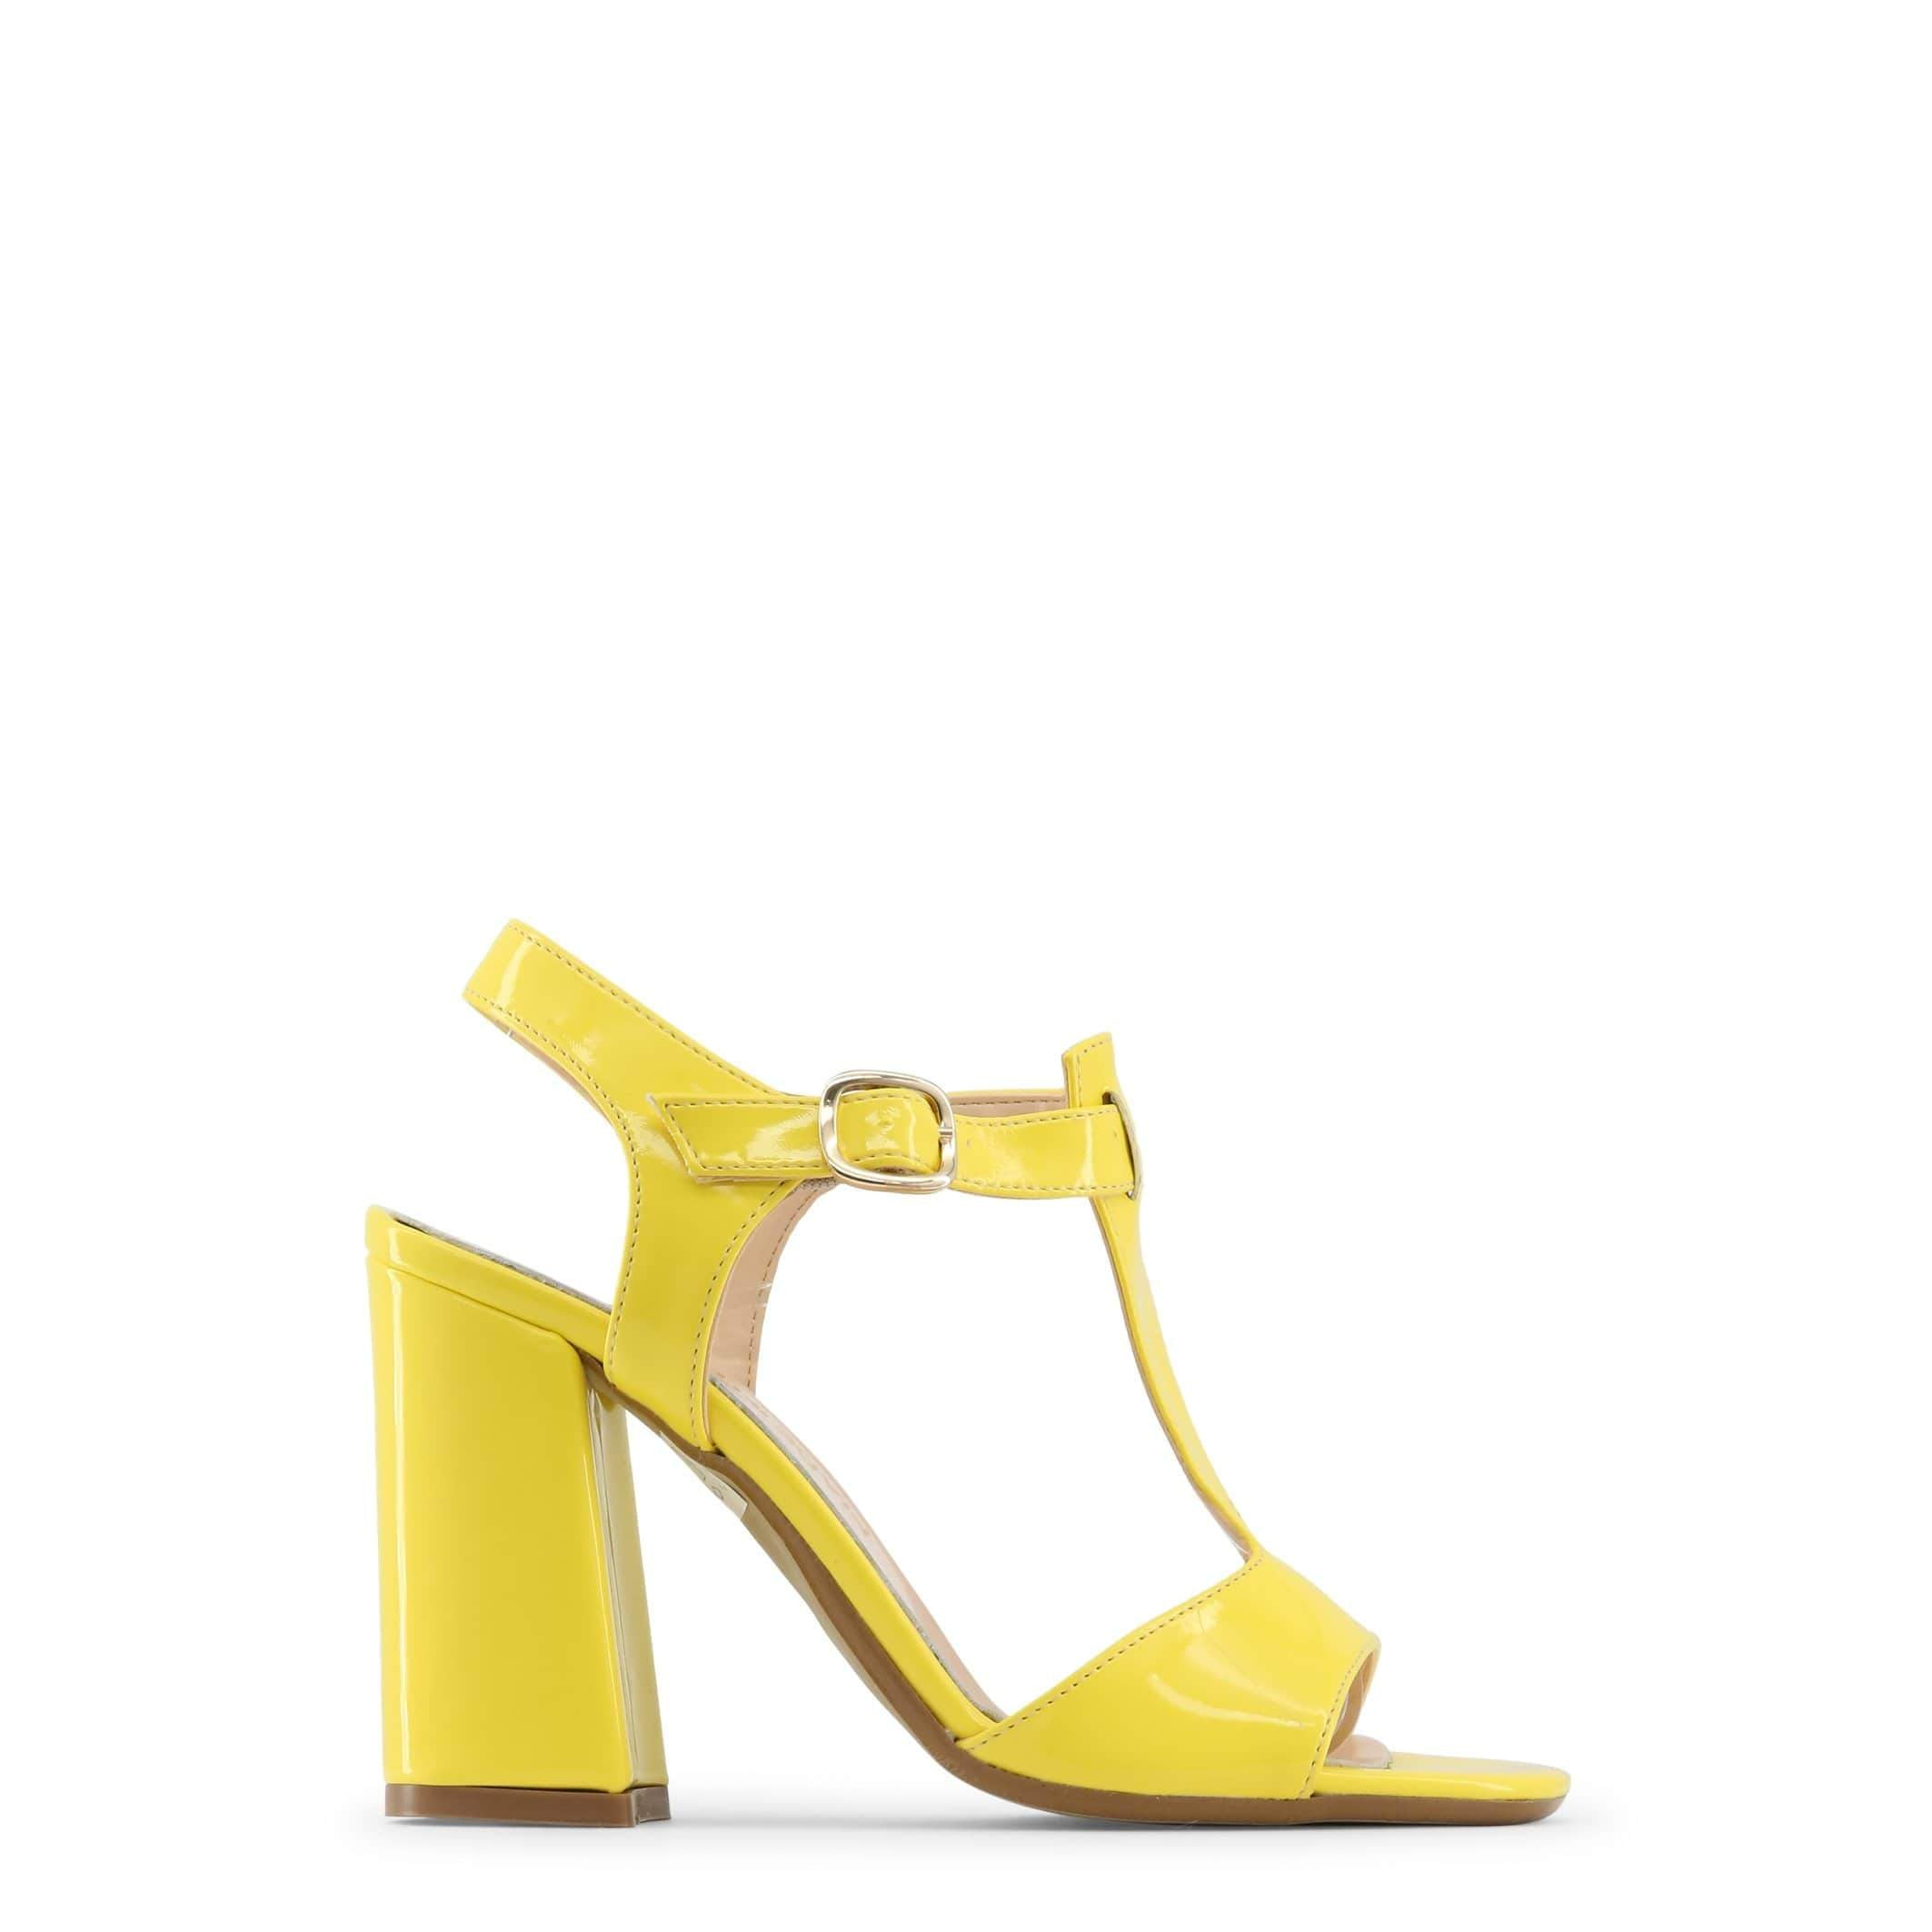 Made in Italia Shoes Sandals yellow / 36 Made in Italia - ARIANNA